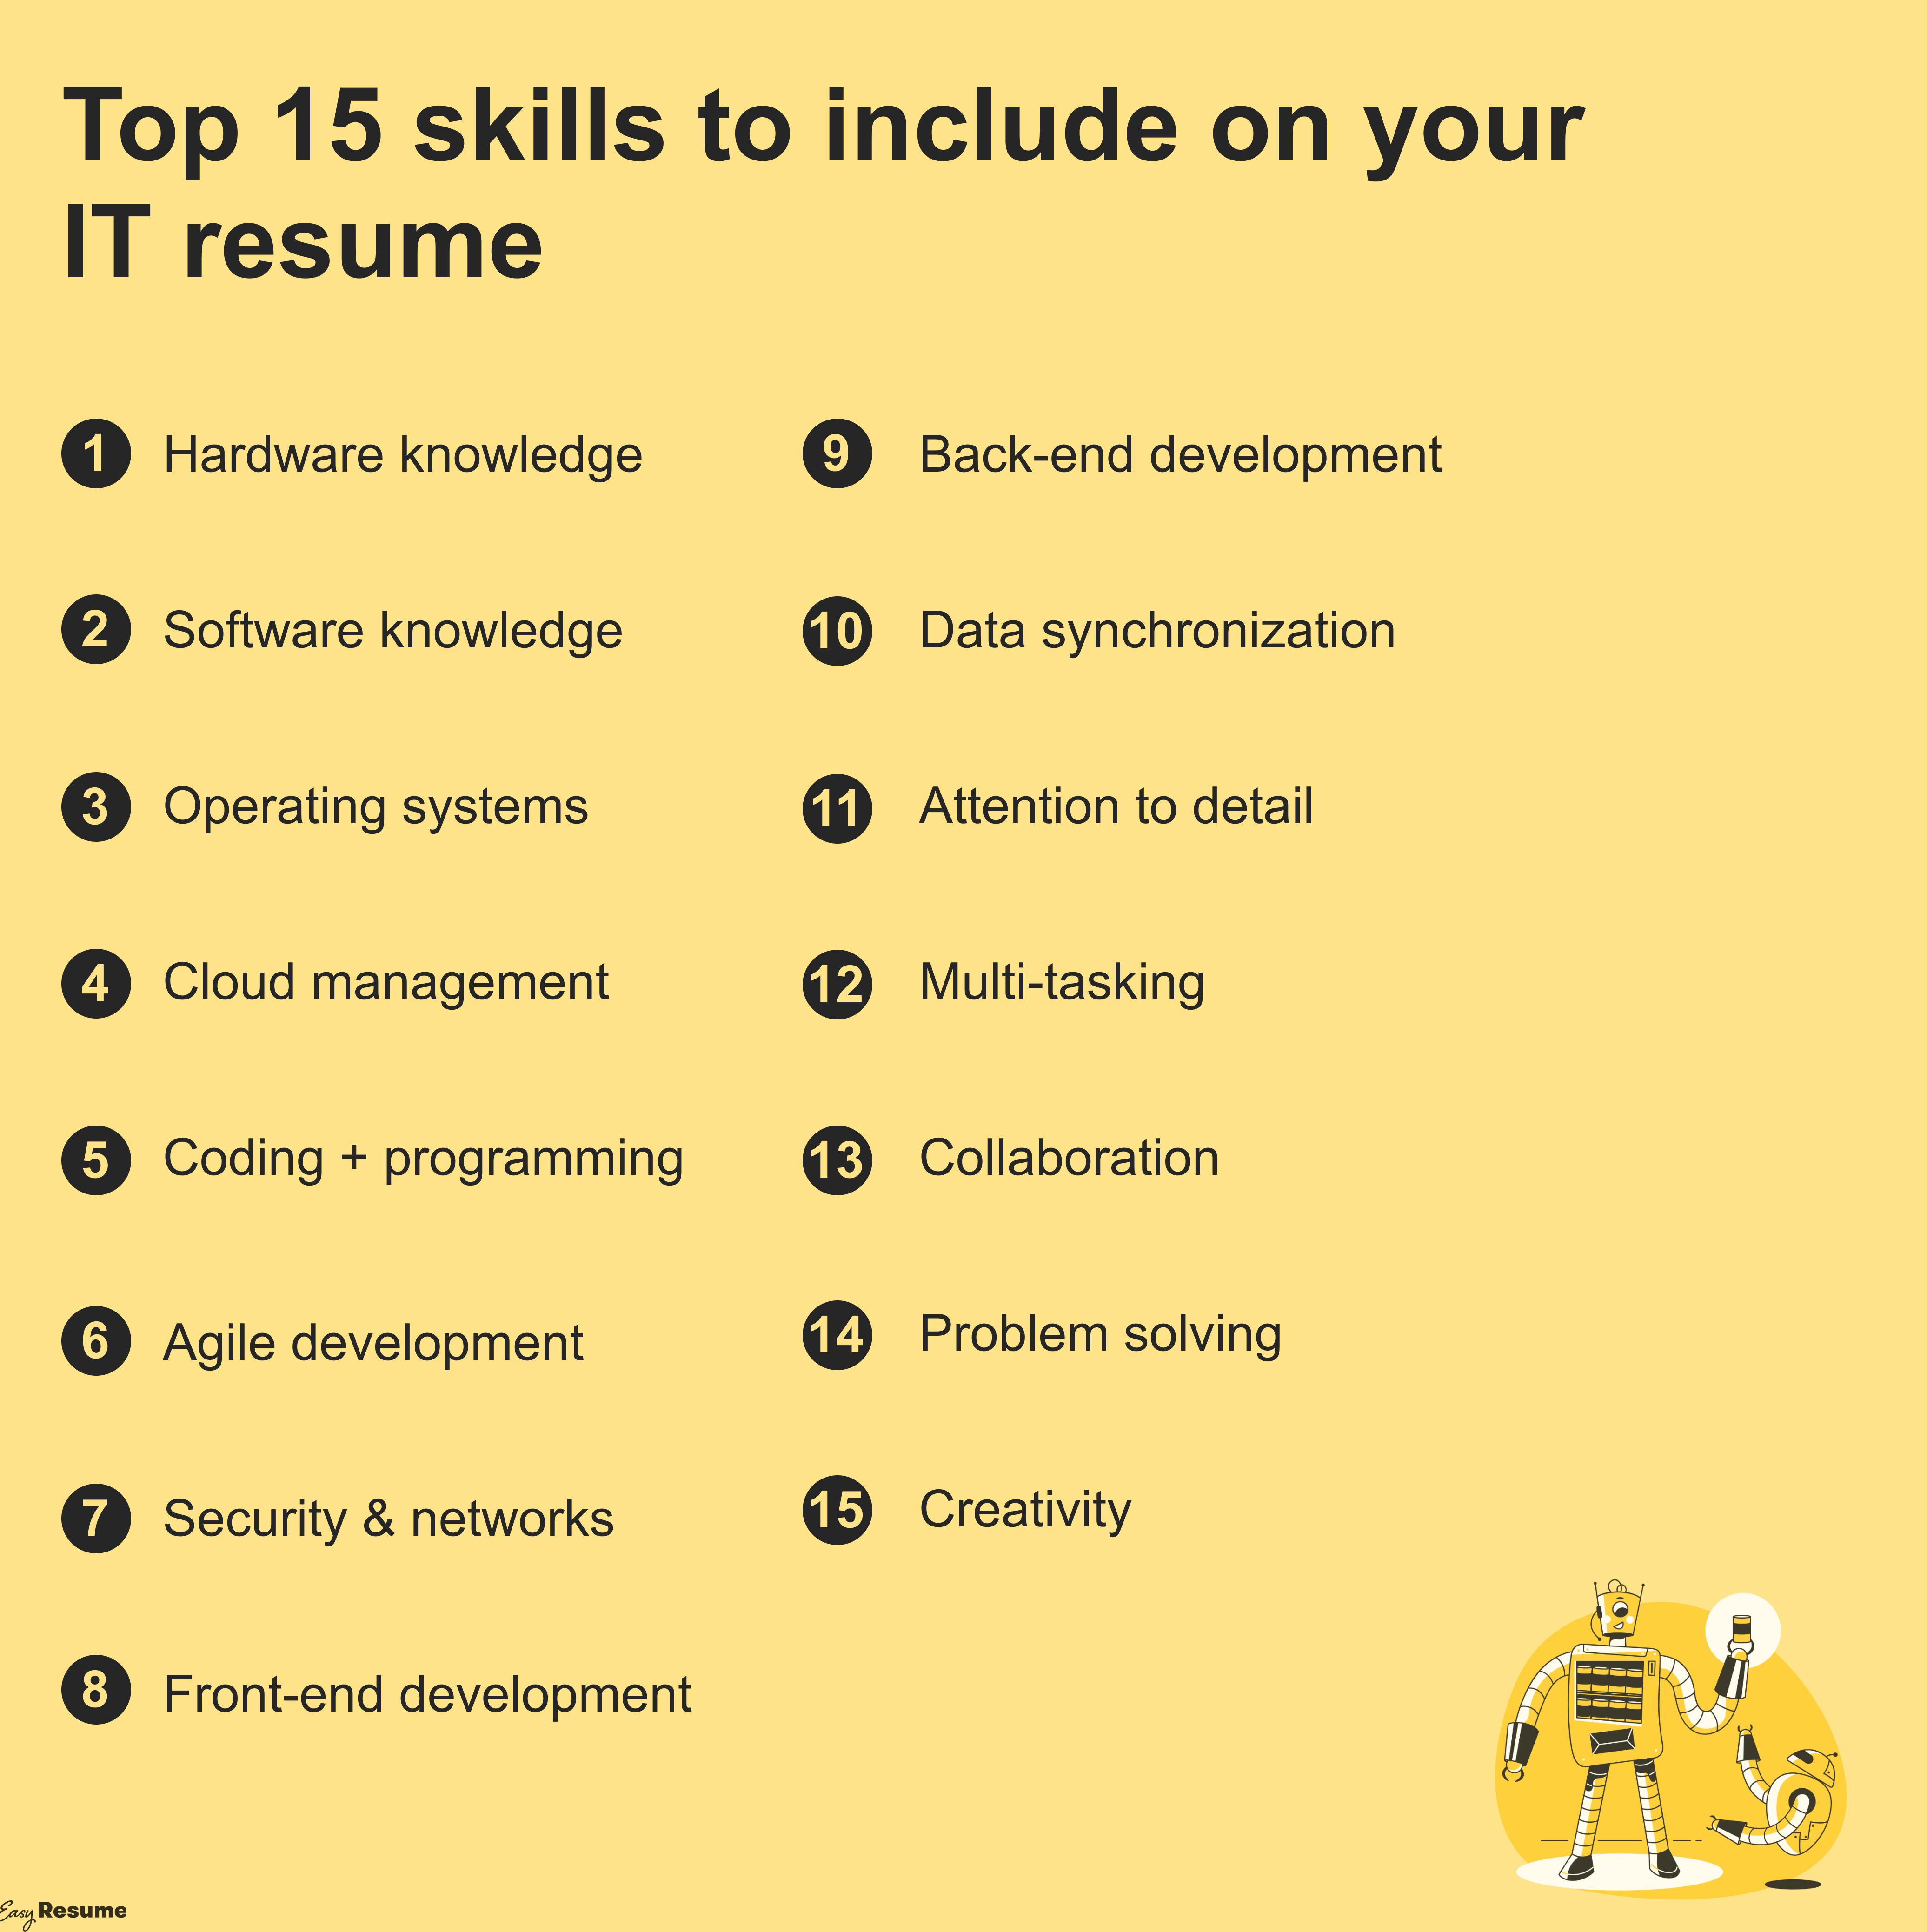 Top IT Skills to include on your resume